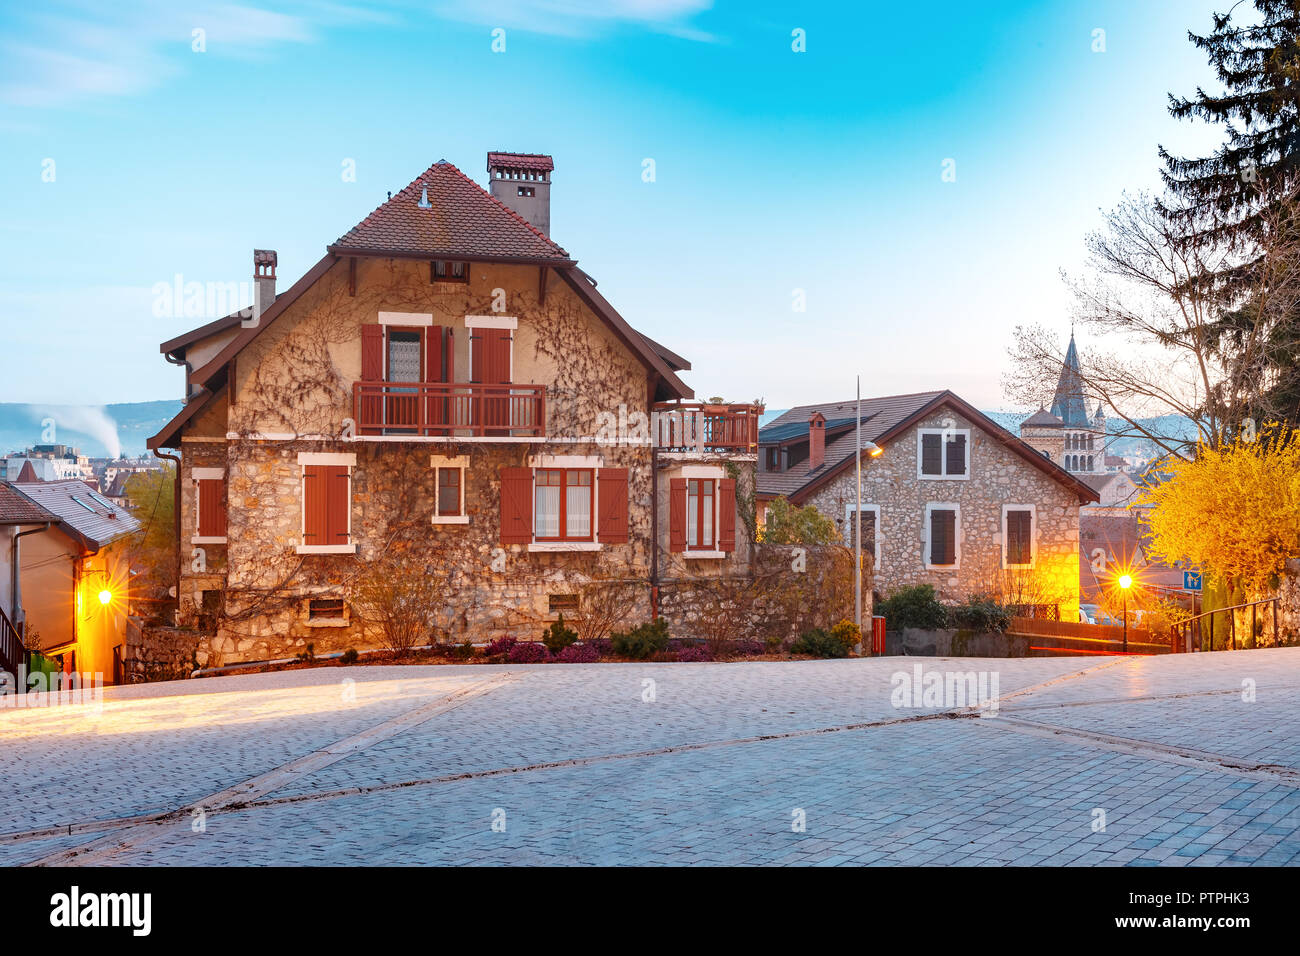 Cozy street in Old Town of Annecy, France Stock Photo